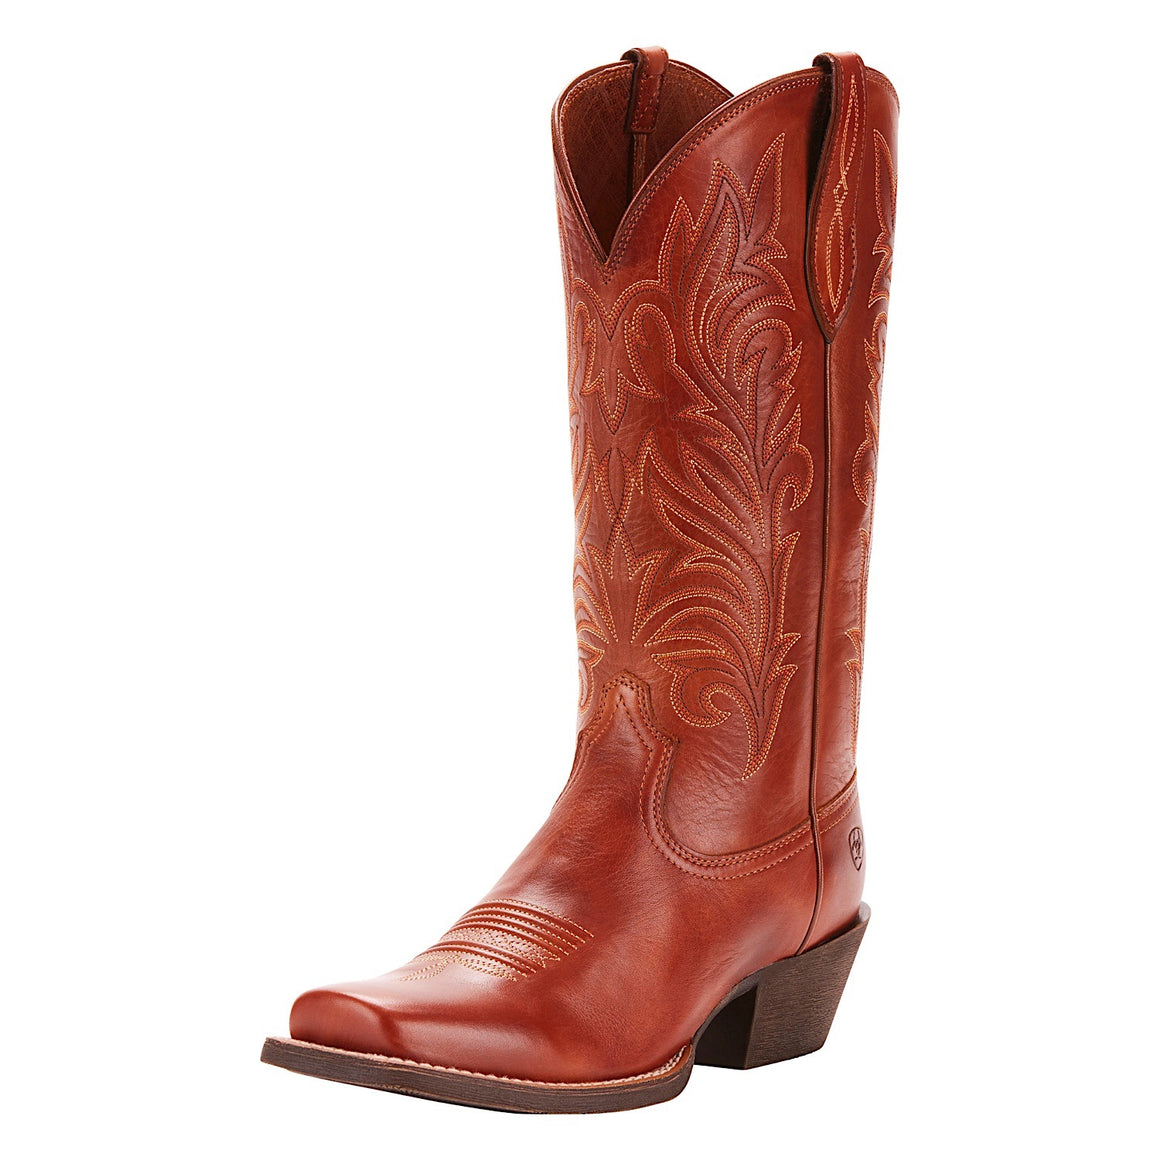 Ariat Women's Round Up Stockyards Western Boot Naturally Rich